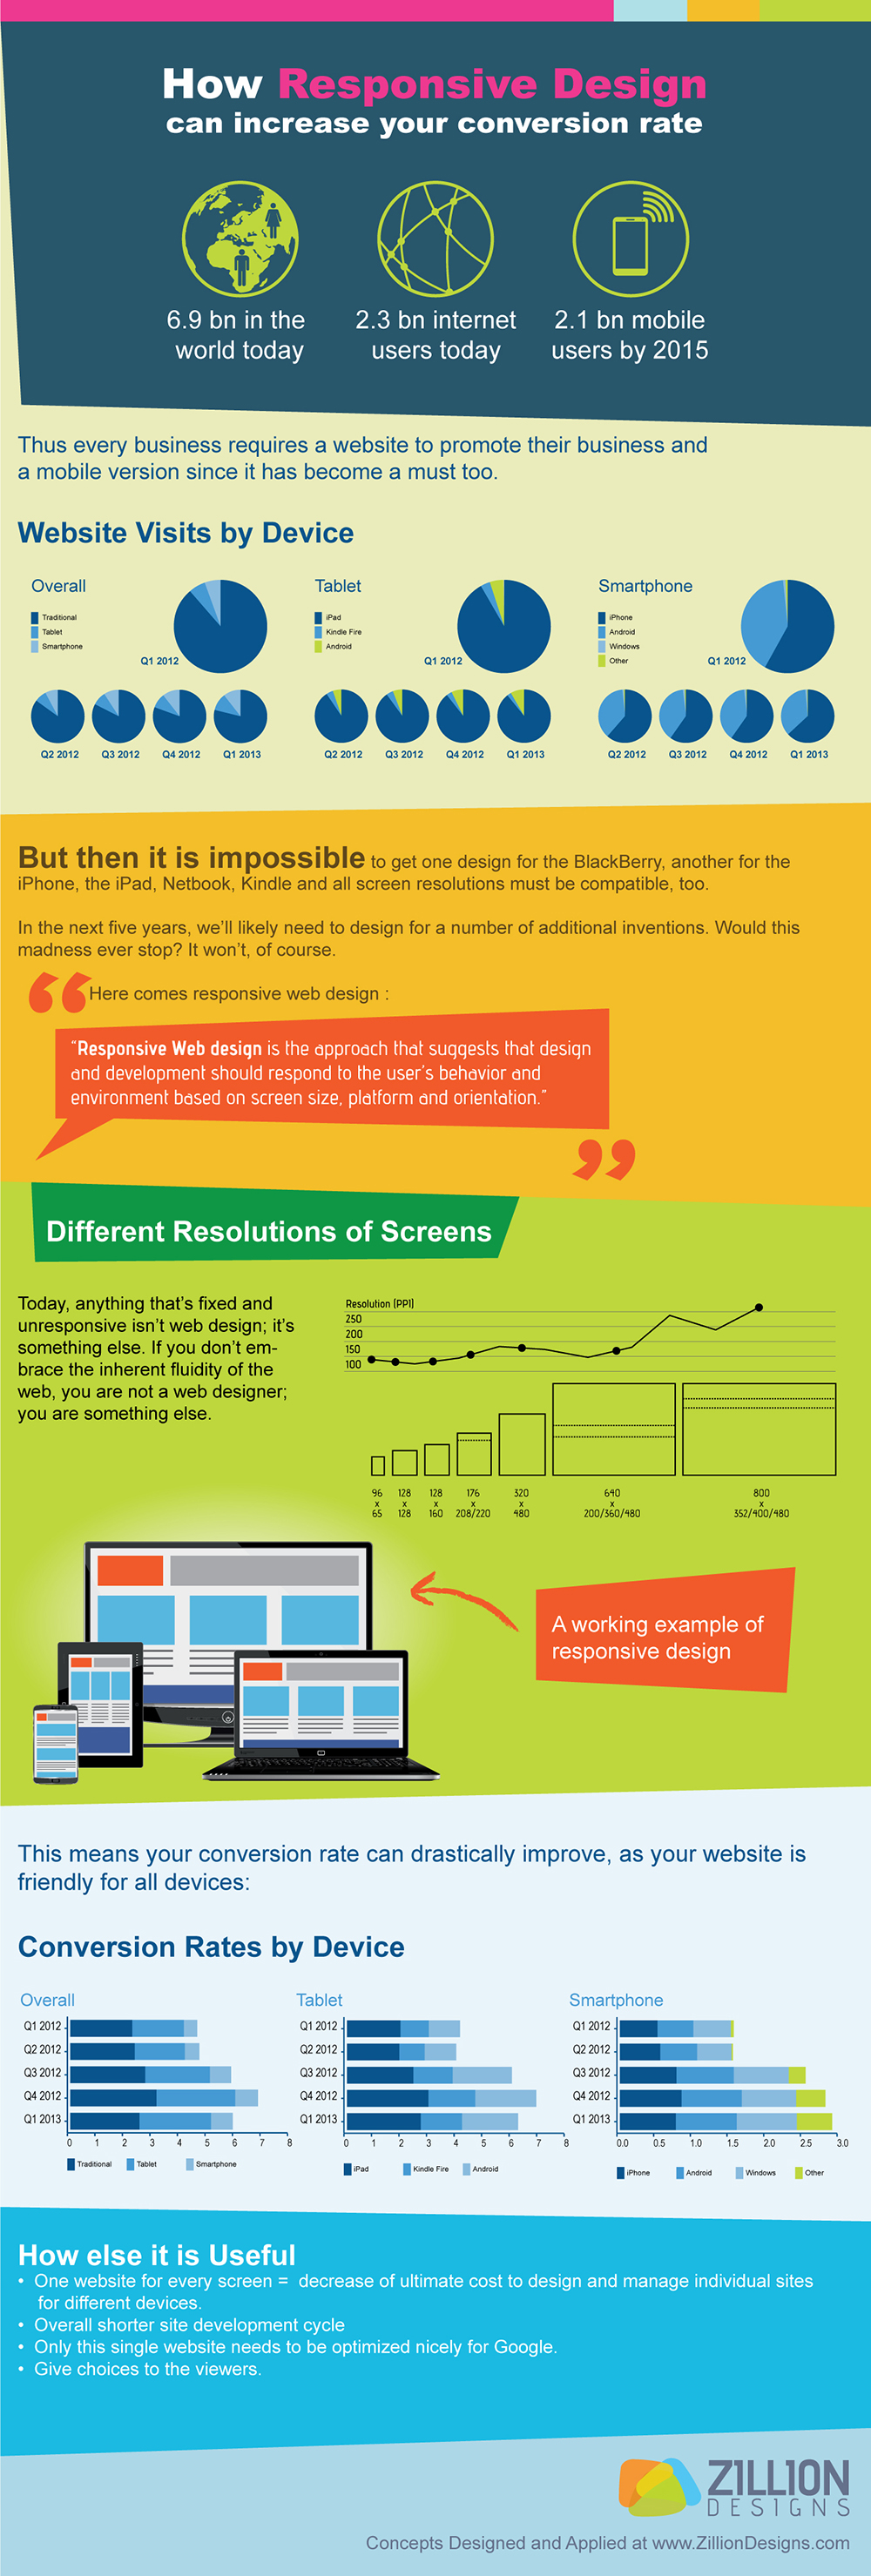 how-responsive-design-can-increase-your-conversion-rate_525f607d35169